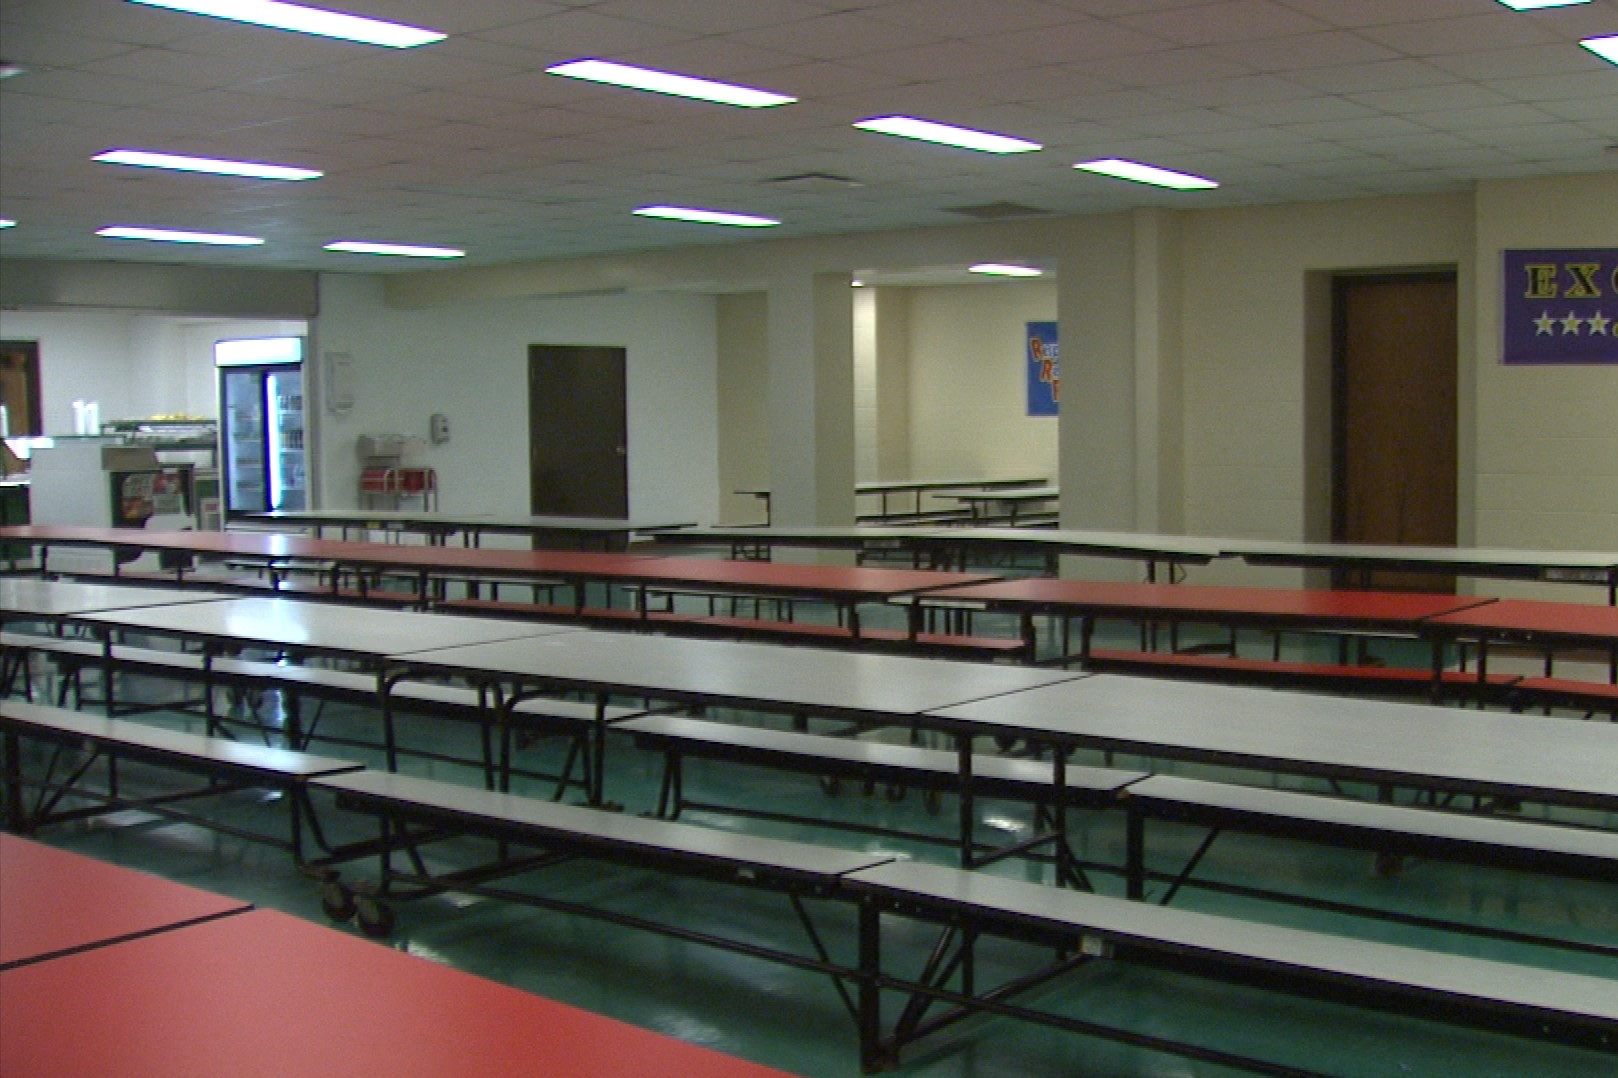 An empty school cafeteria.